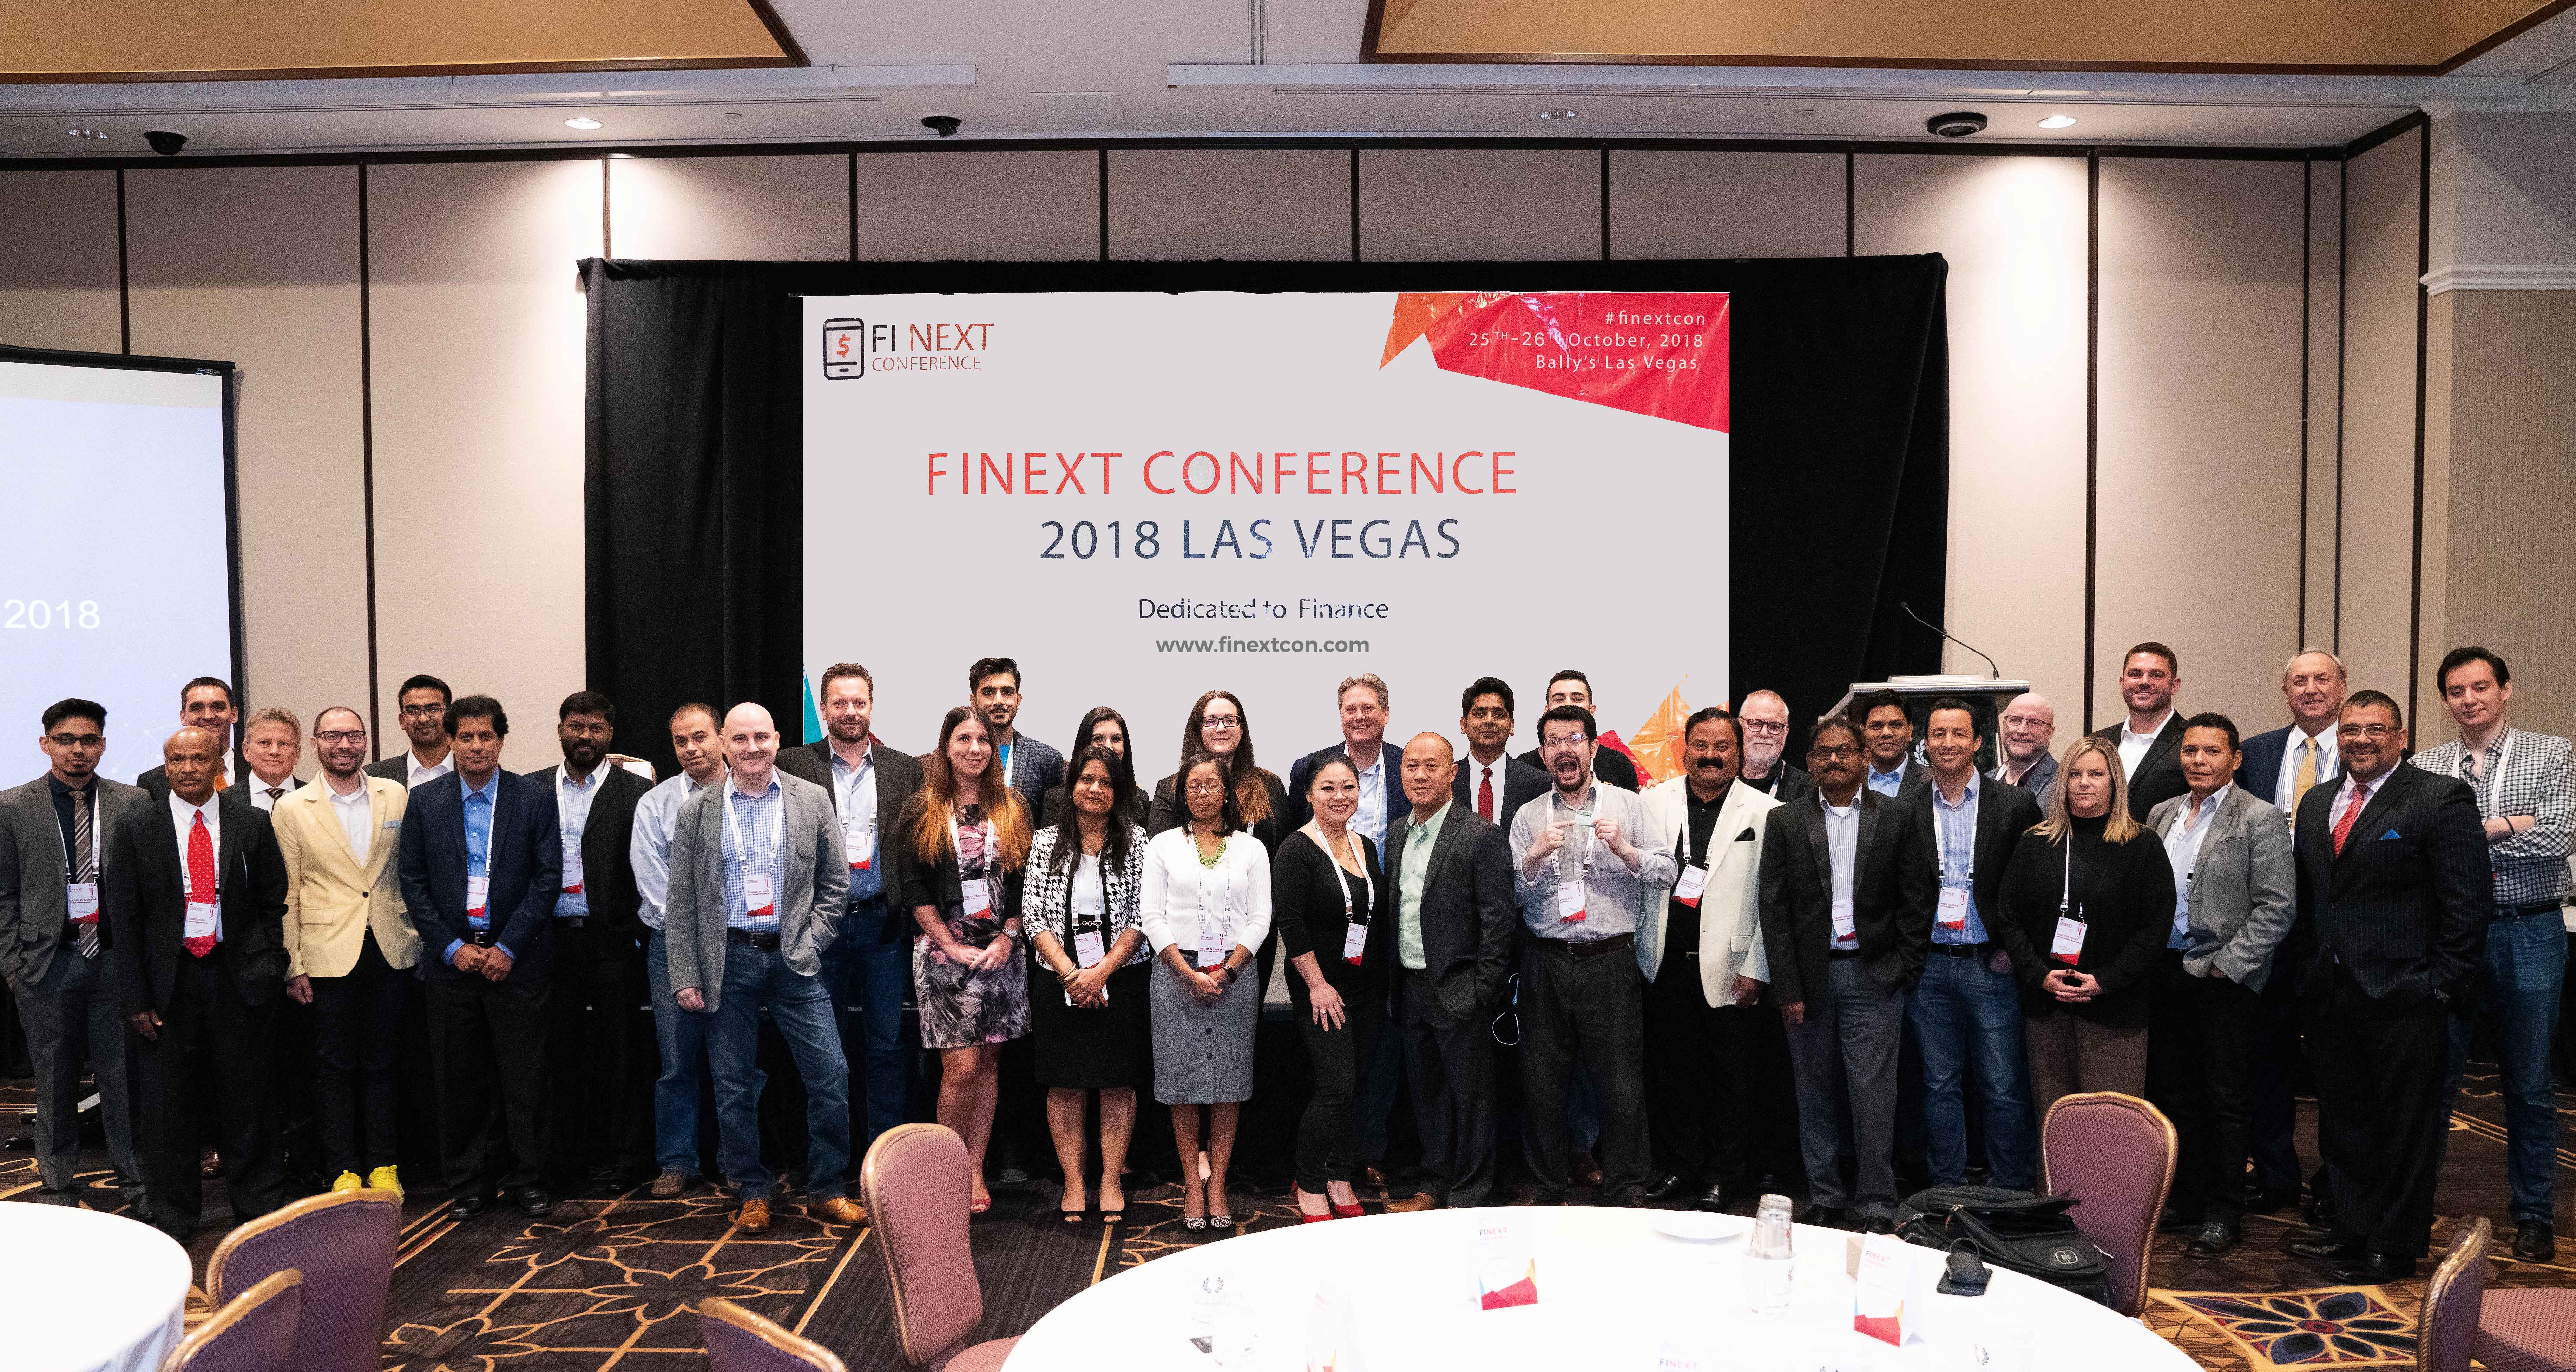 FiNext Tech Awards & Conference: a successful Inaugural Event in Las Vegas